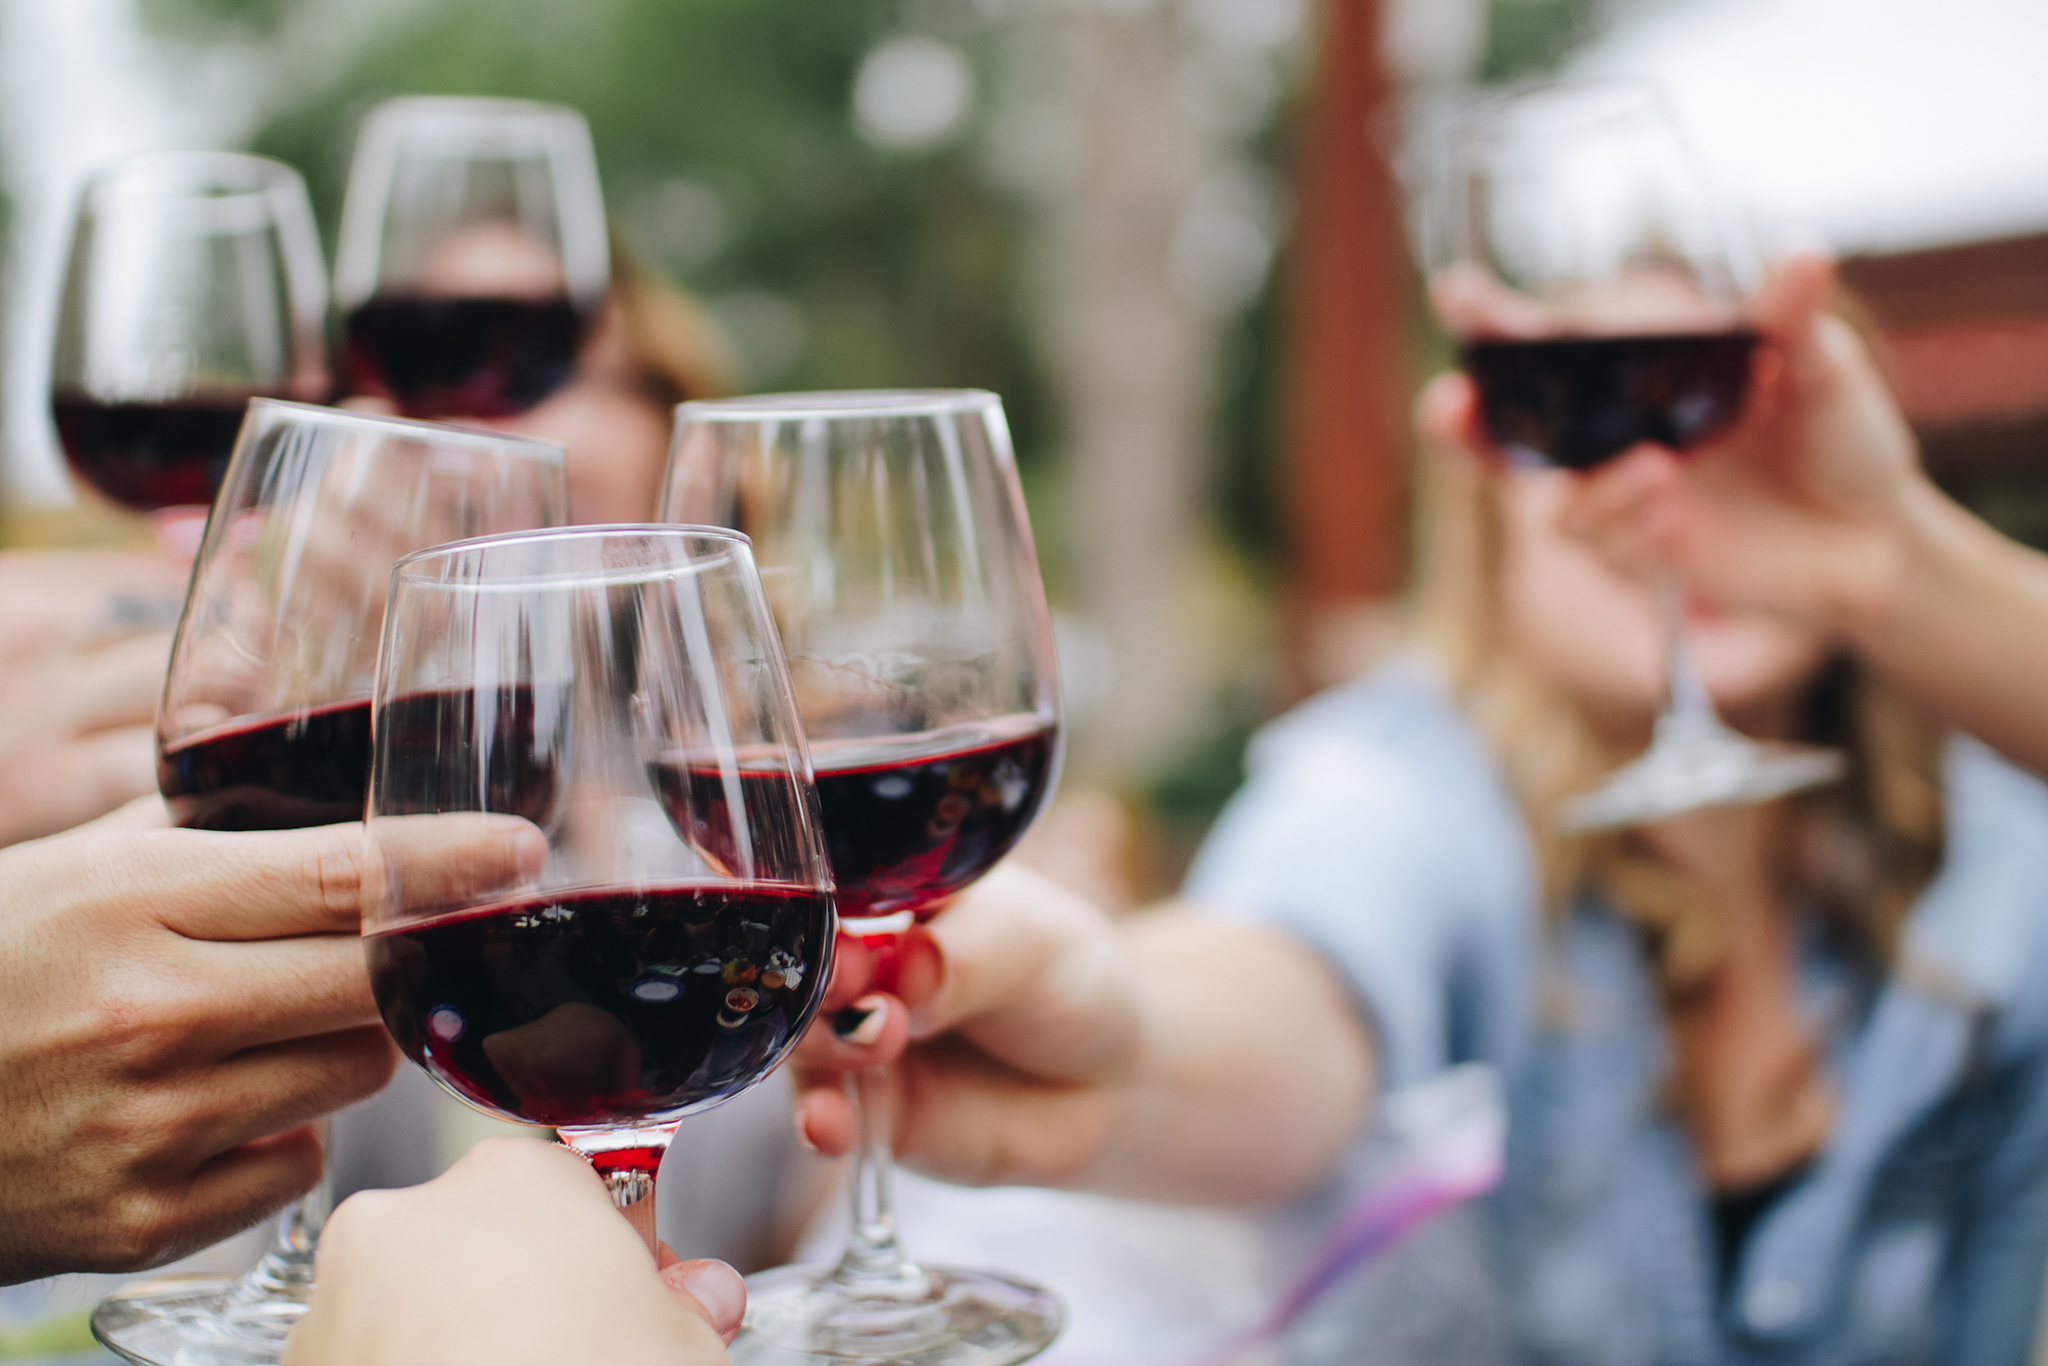 These are some of the best deals happening during National Wine Day